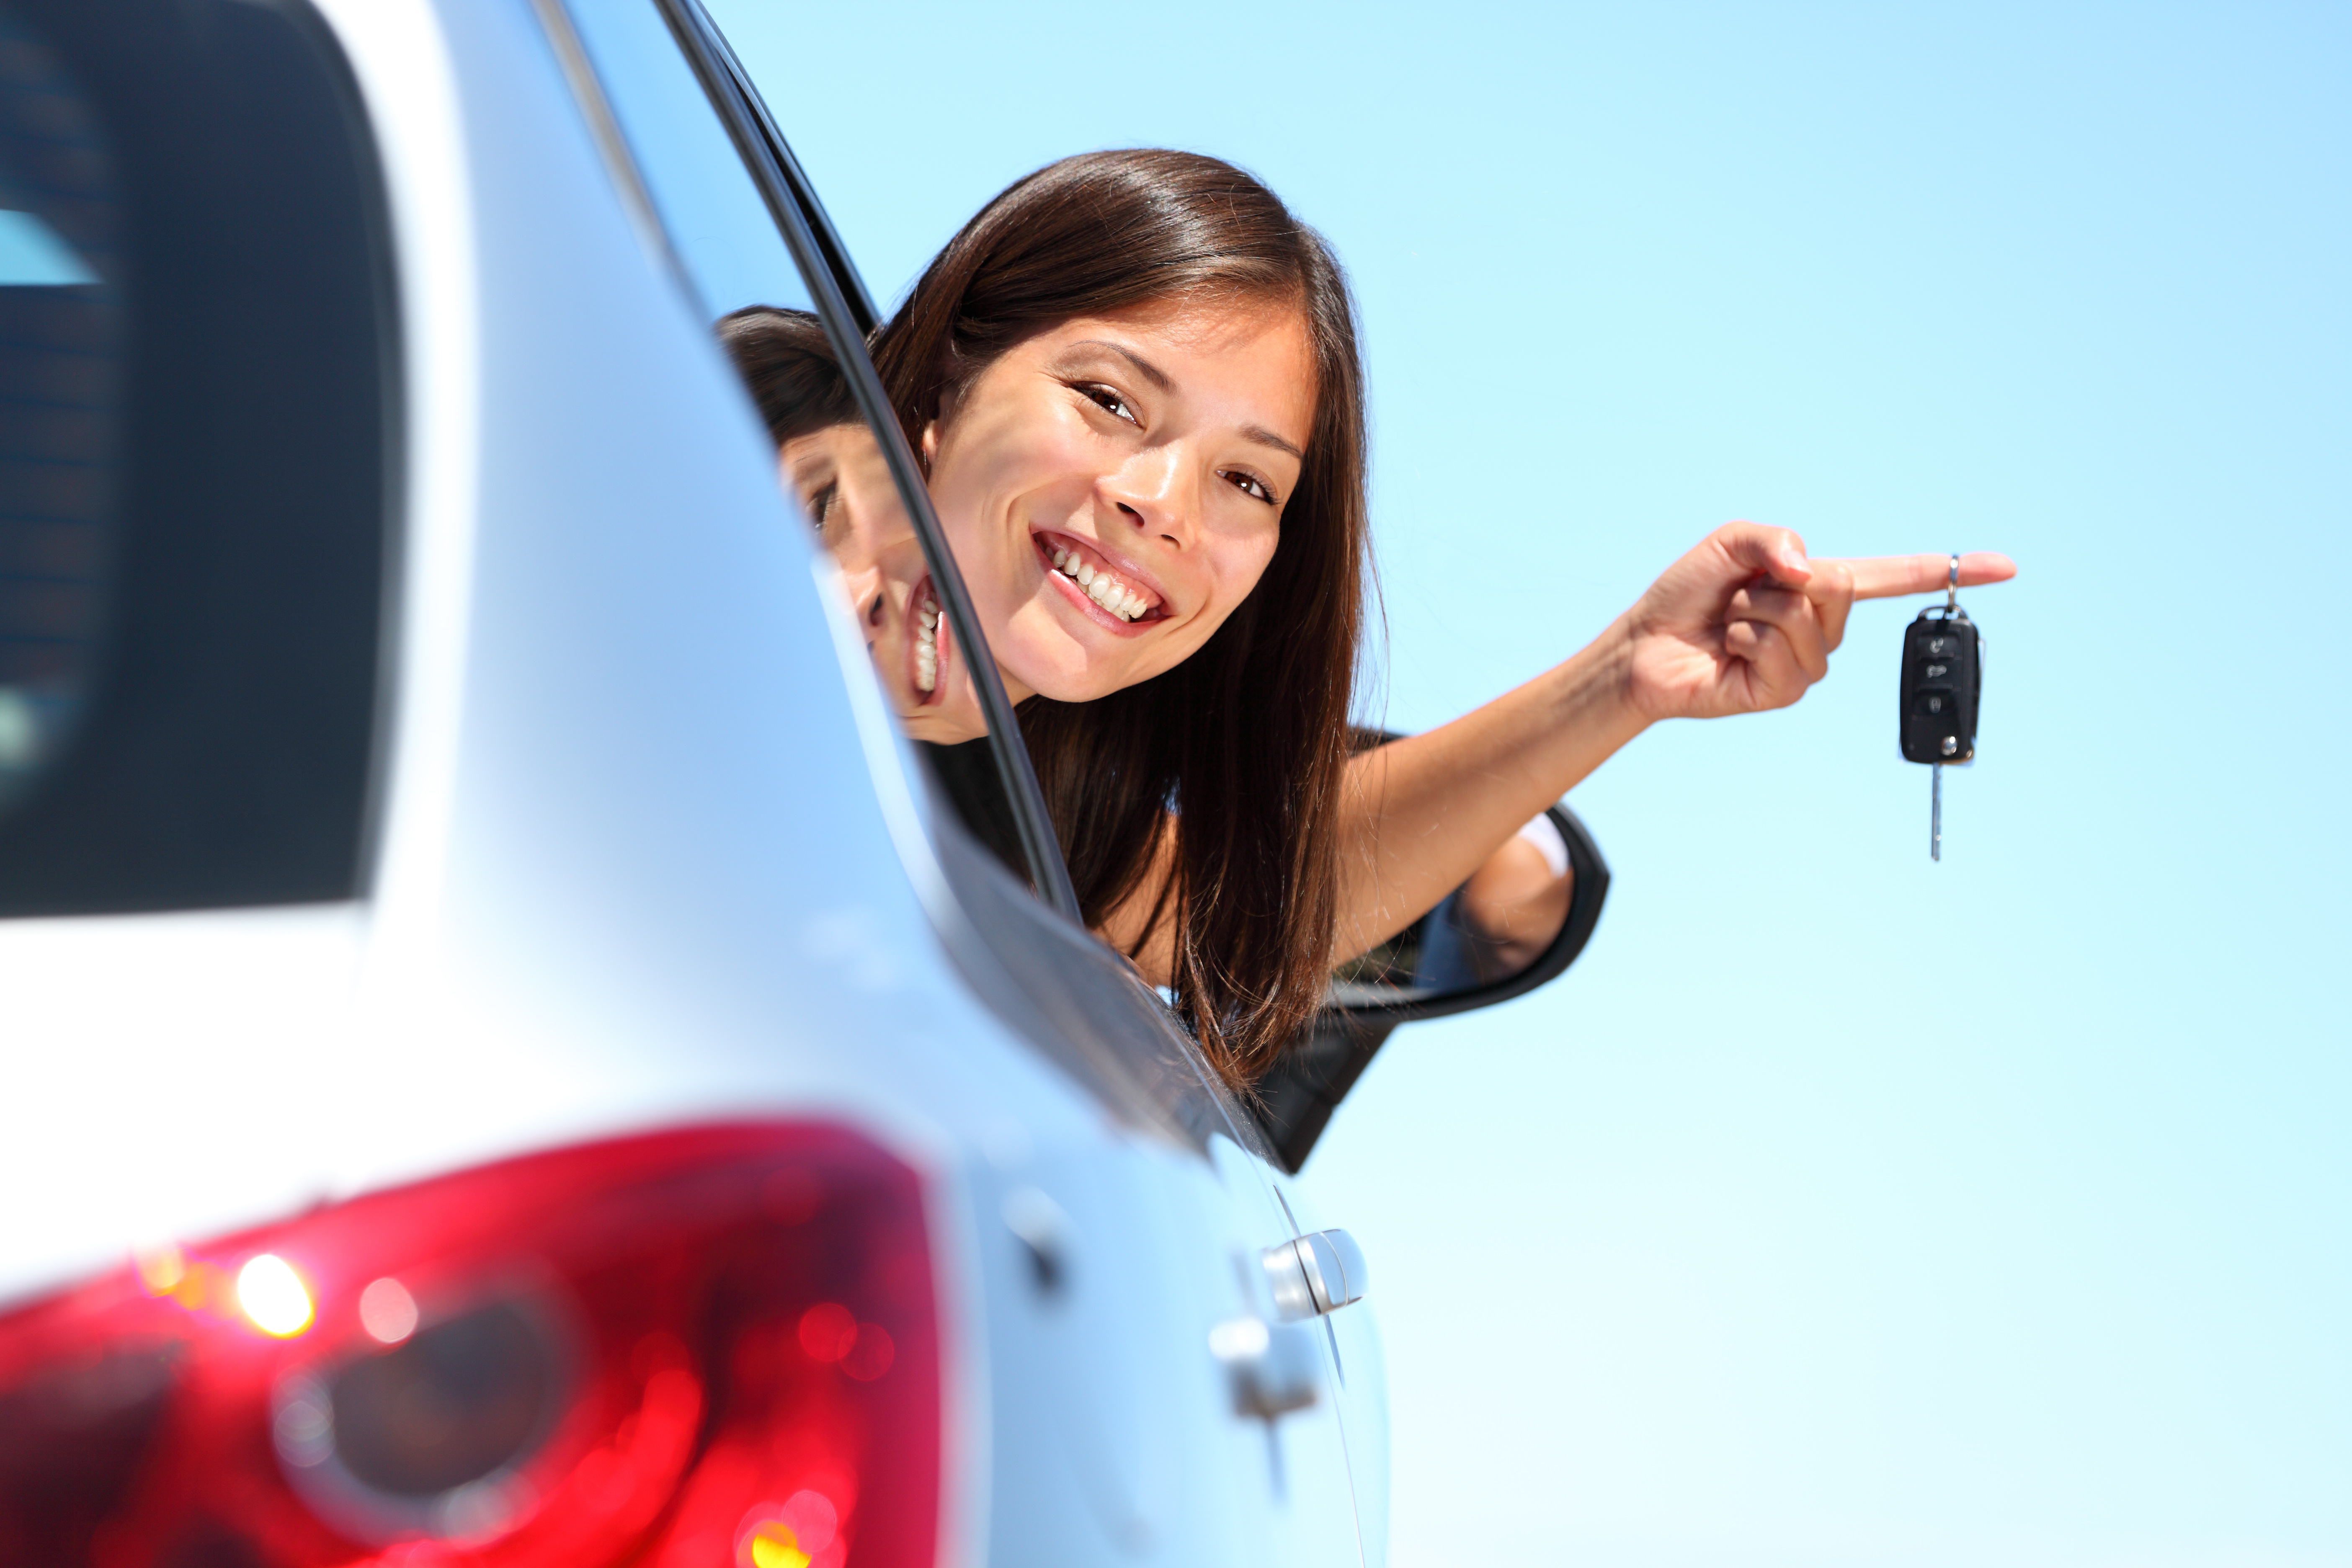 Woman driver holding car keys out window on one finger